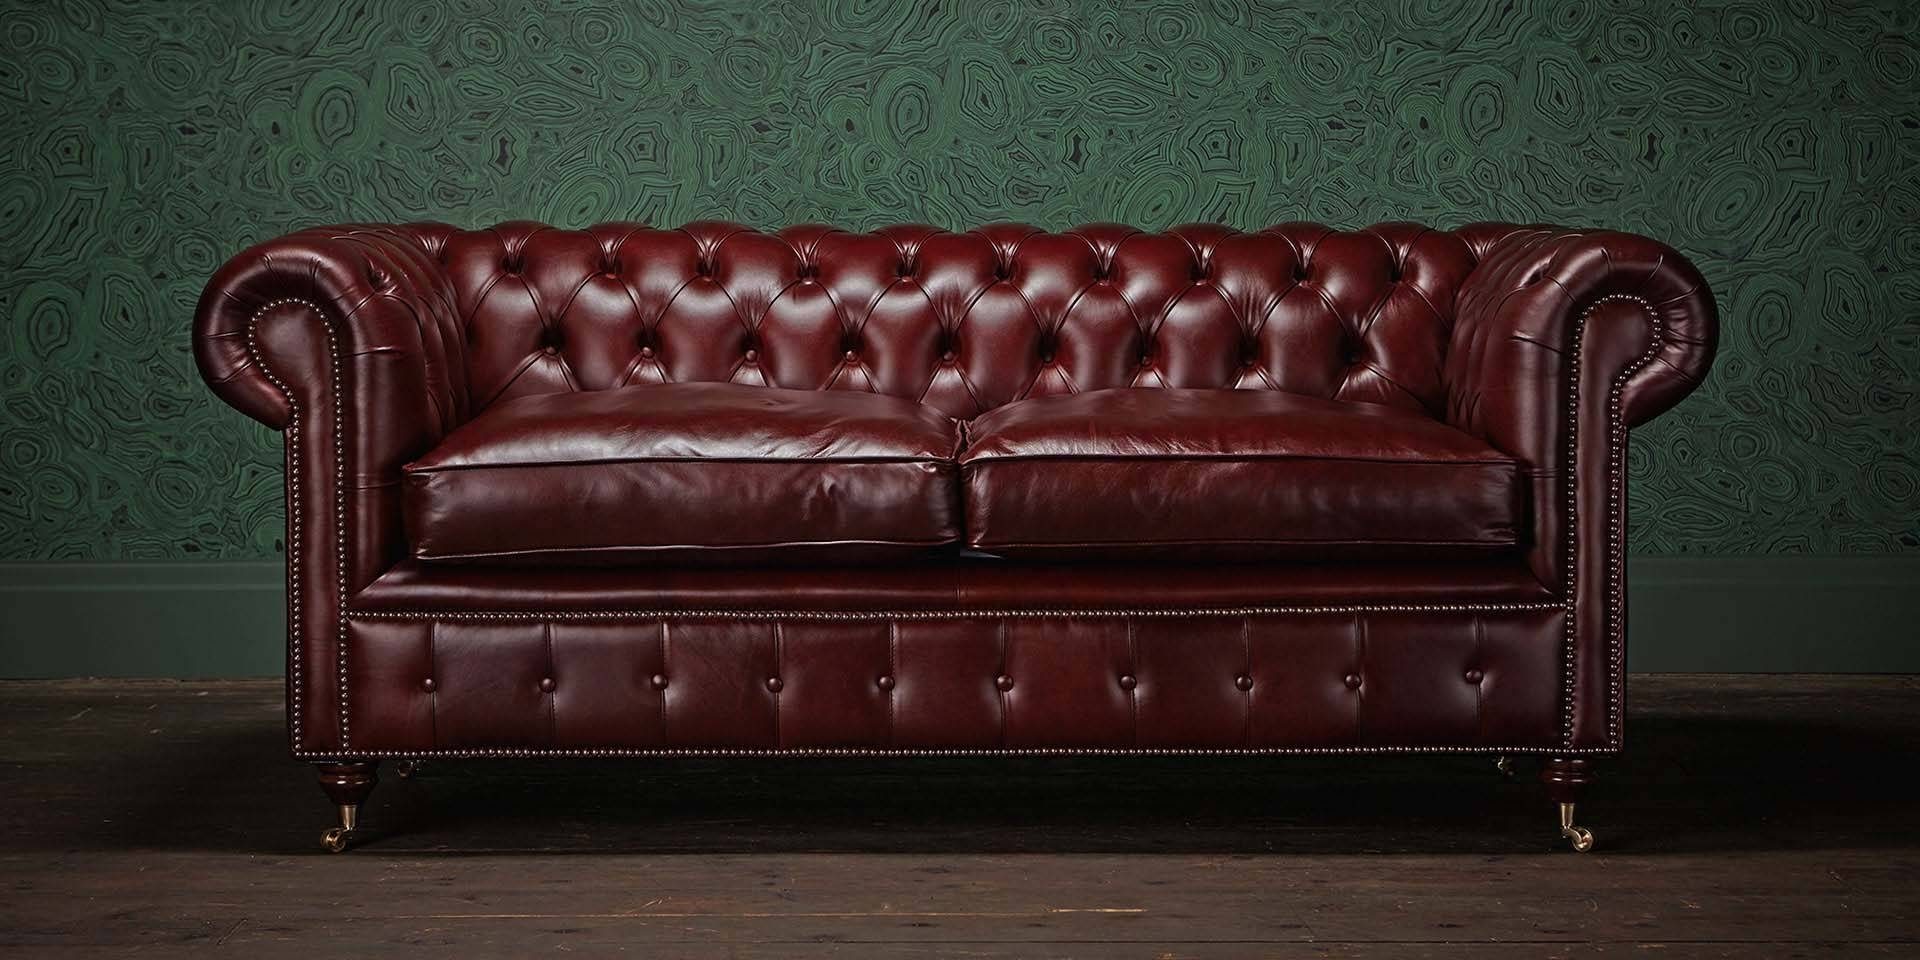 Chesterfields Of England | The Original Chesterfield Company regarding Red Leather Chesterfield Sofas (Image 6 of 15)